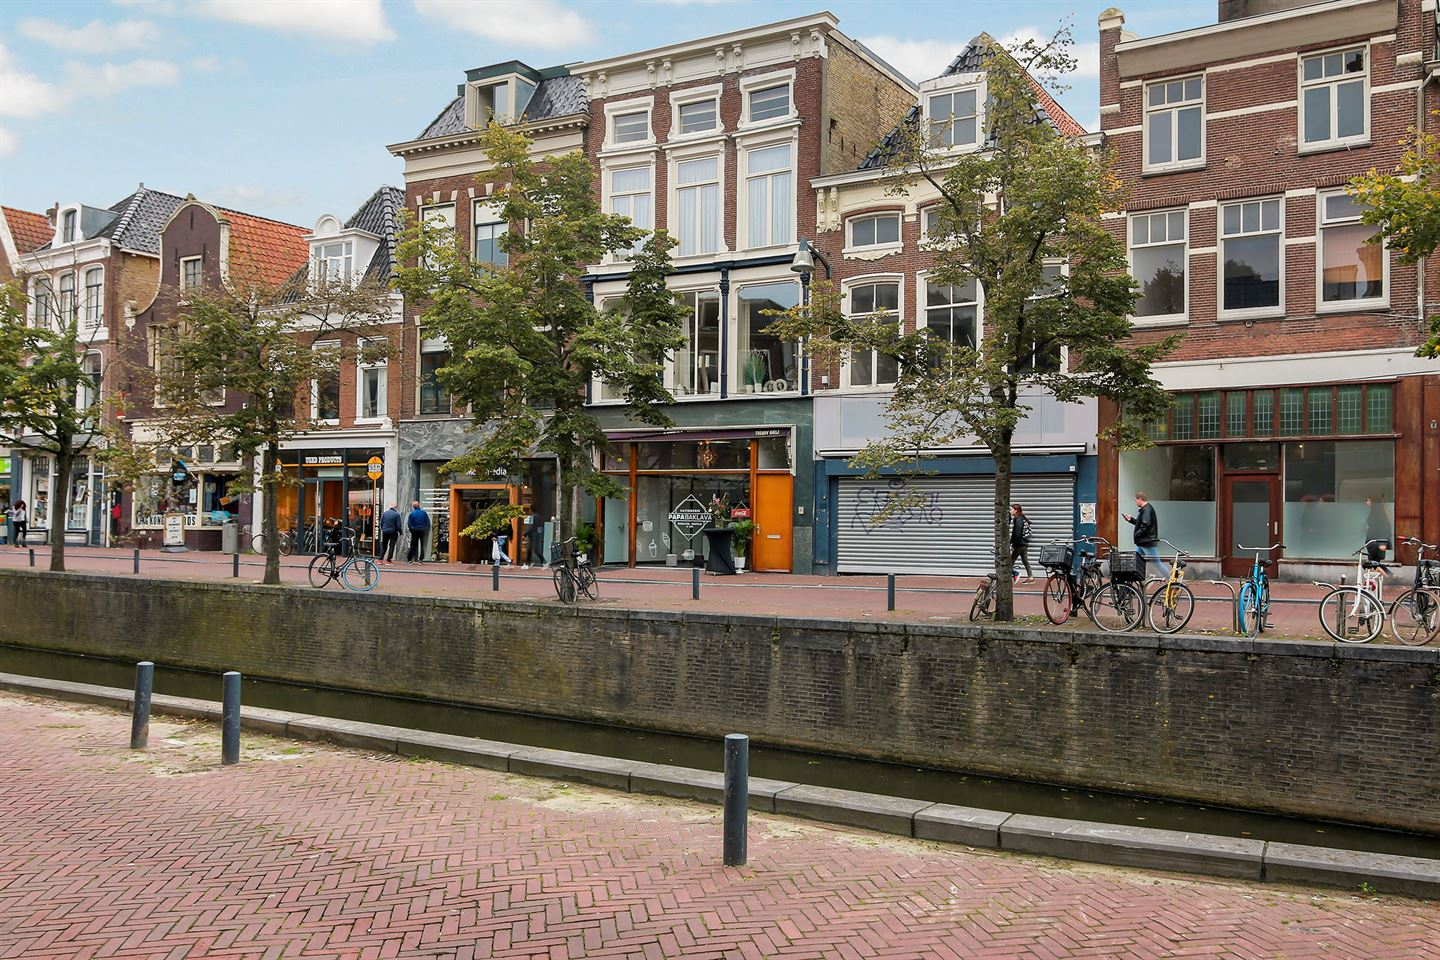 View photo 1 of Voorstreek 17 a